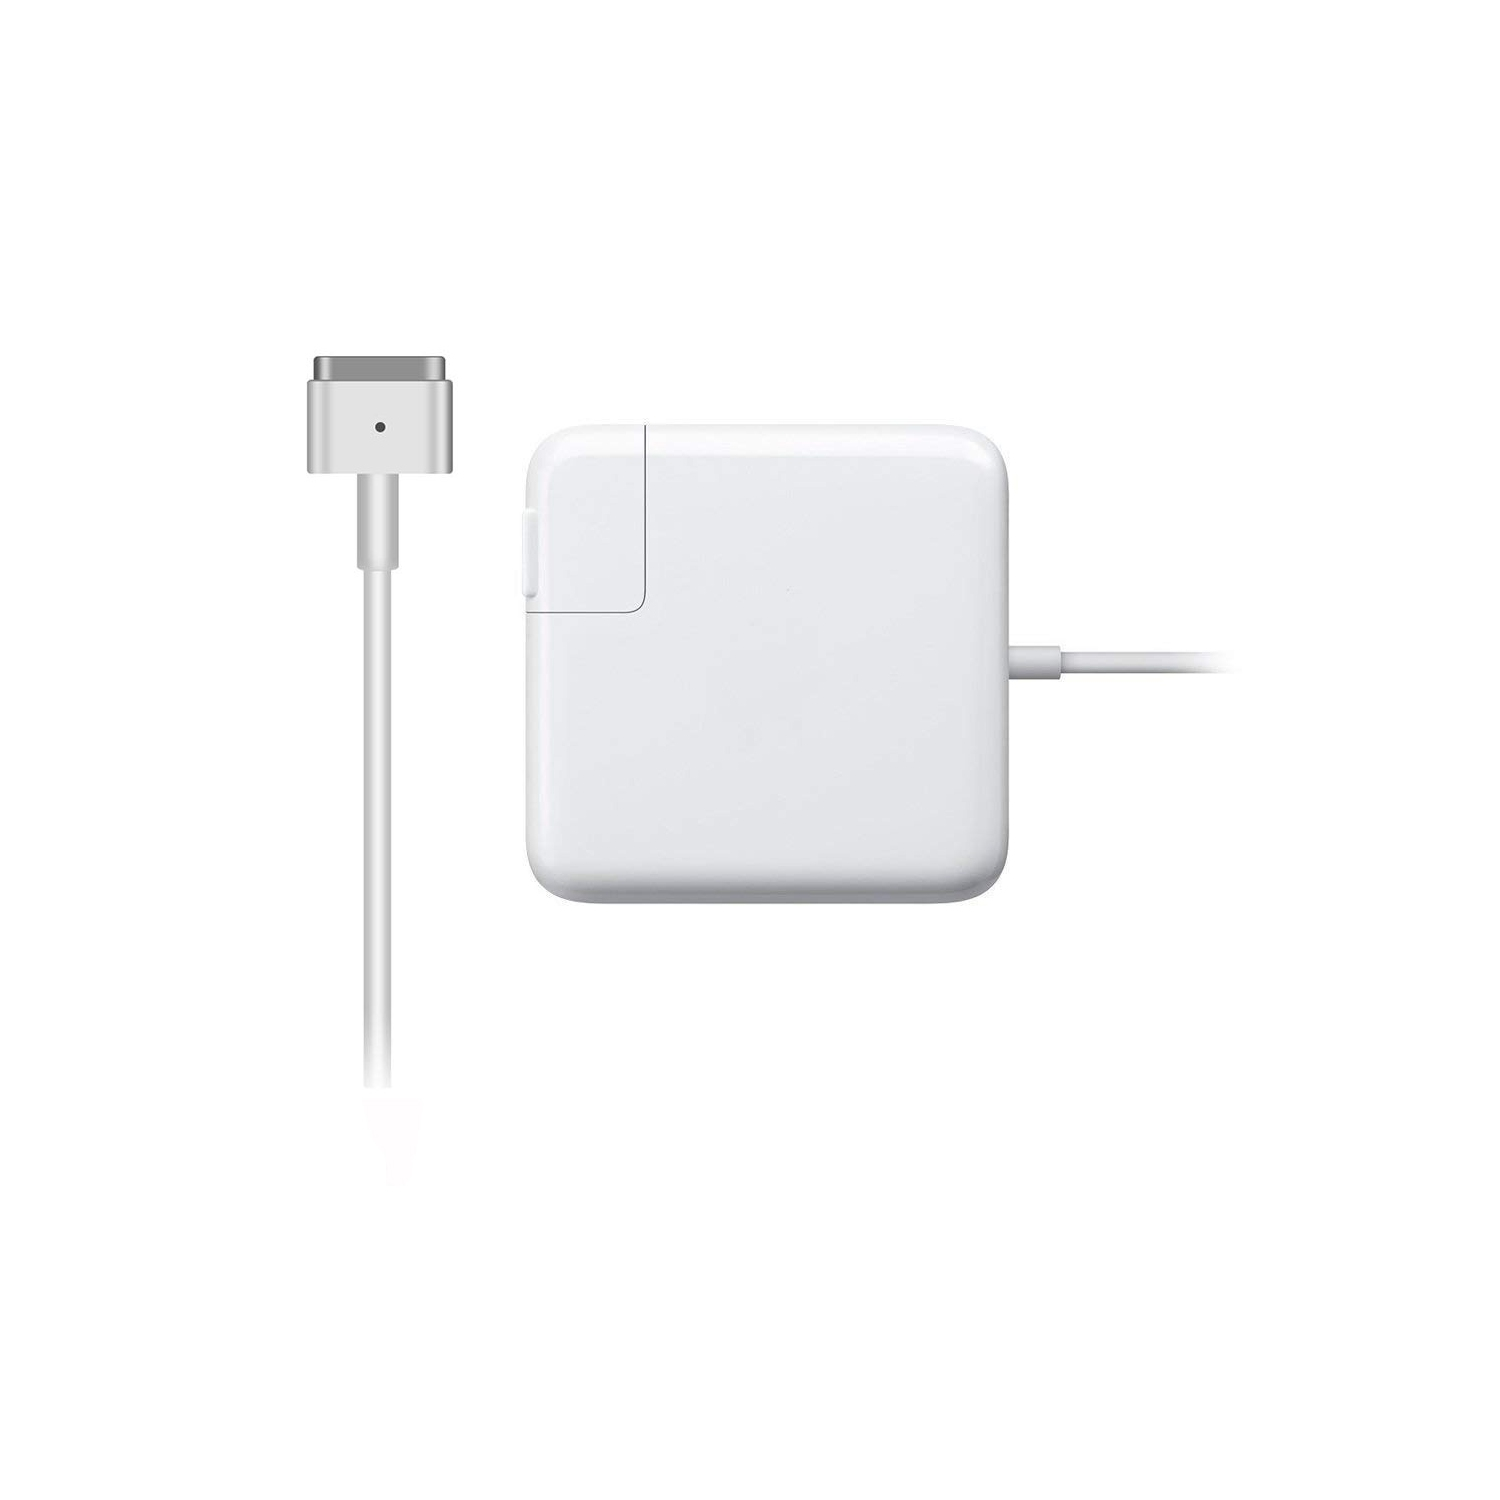 Axgear 85w Power Adapter For Apple Magsafe 2 Ii Macbook Pro A1424 Charger 60 Watt Computer Supplies Best Buy Canada